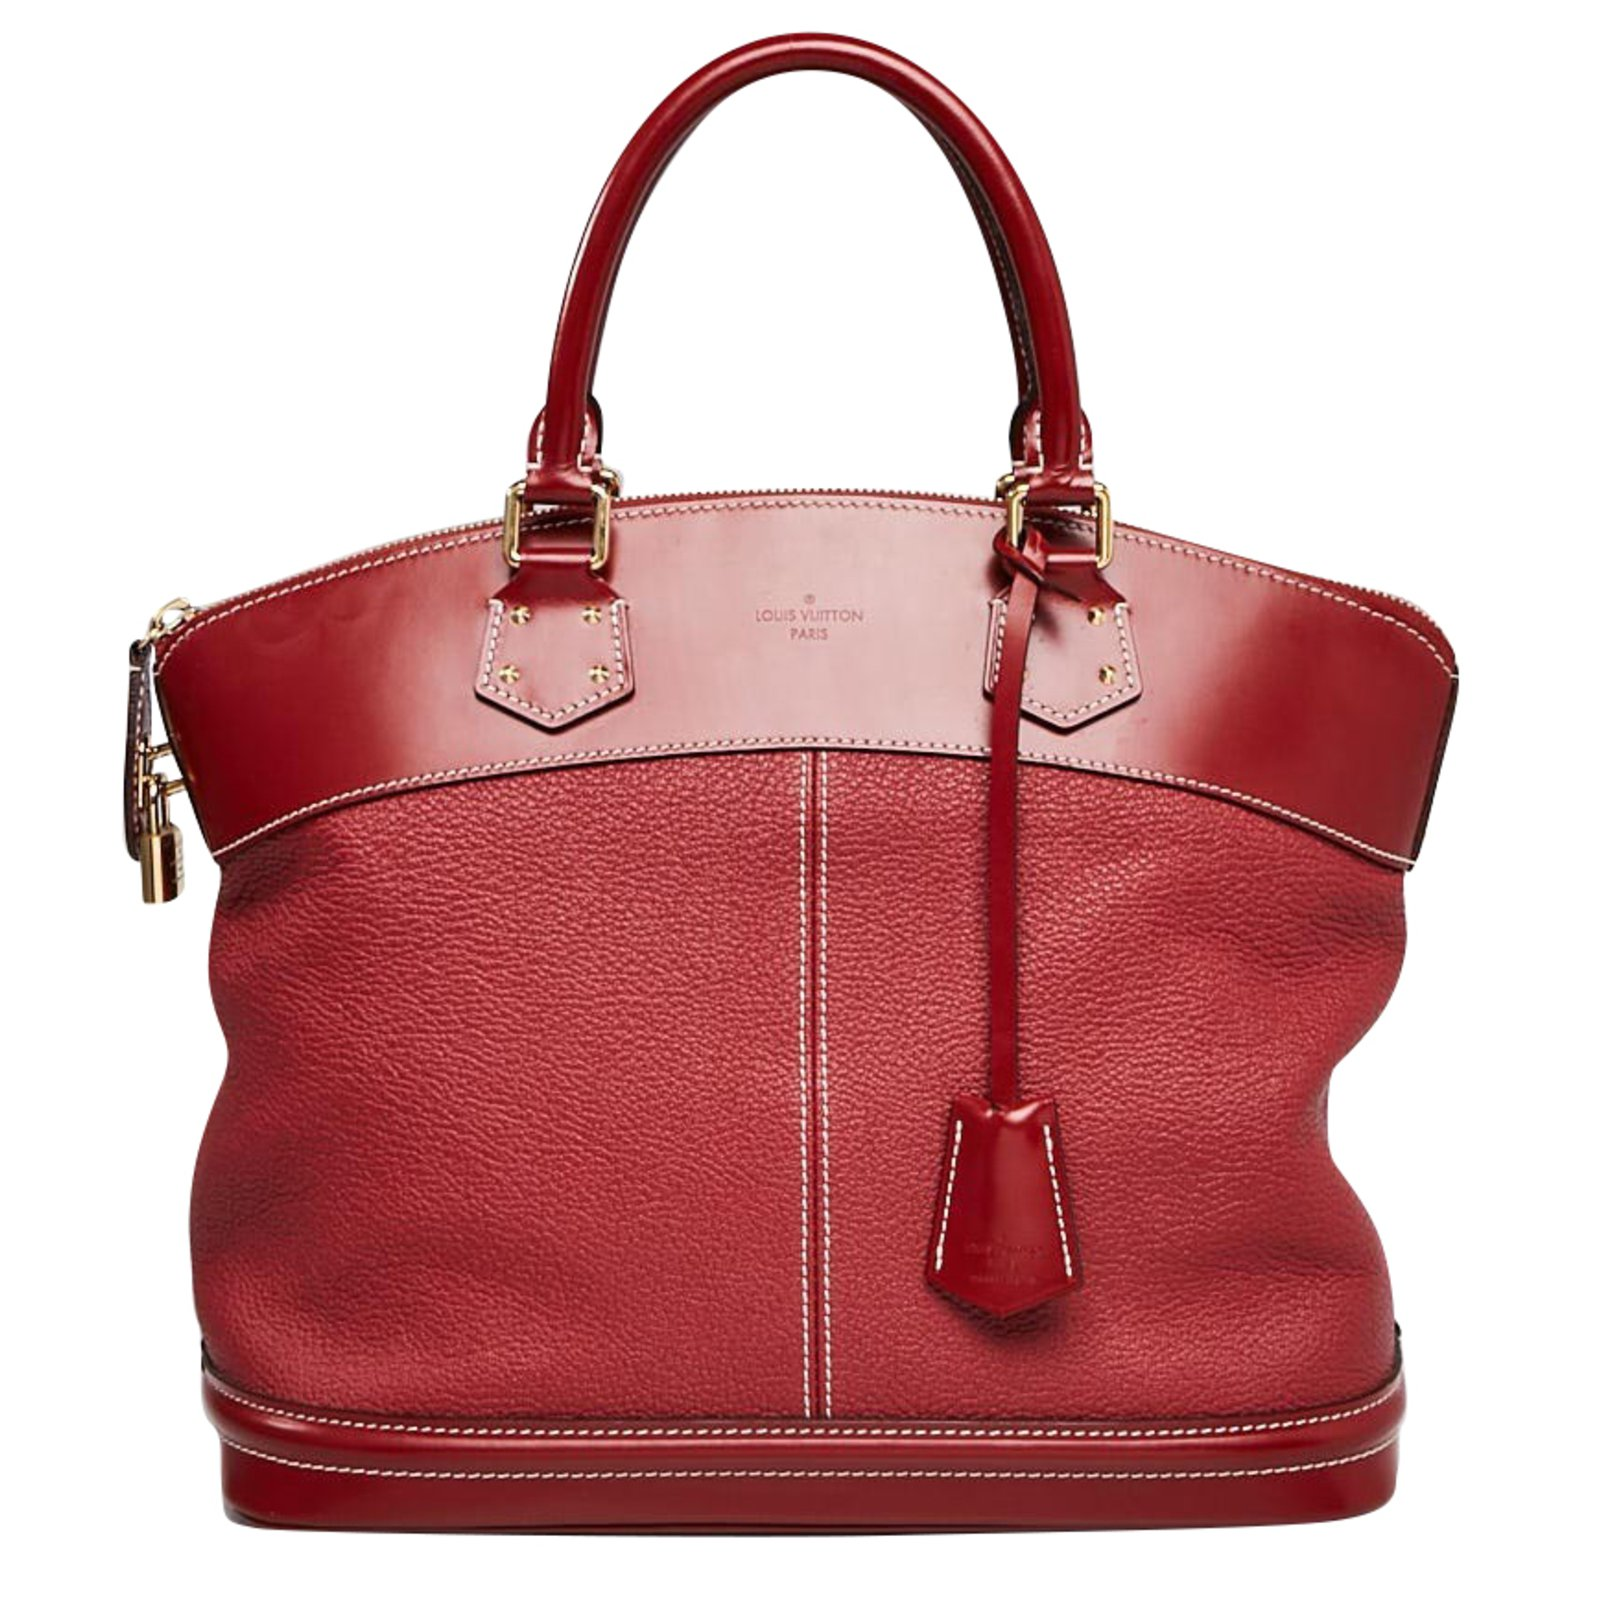 9a36371204903 Louis Vuitton LOUIS VUITTON Tanami Suhali Leather Lockit MM Bag Handbags  Leather Red ref.63149